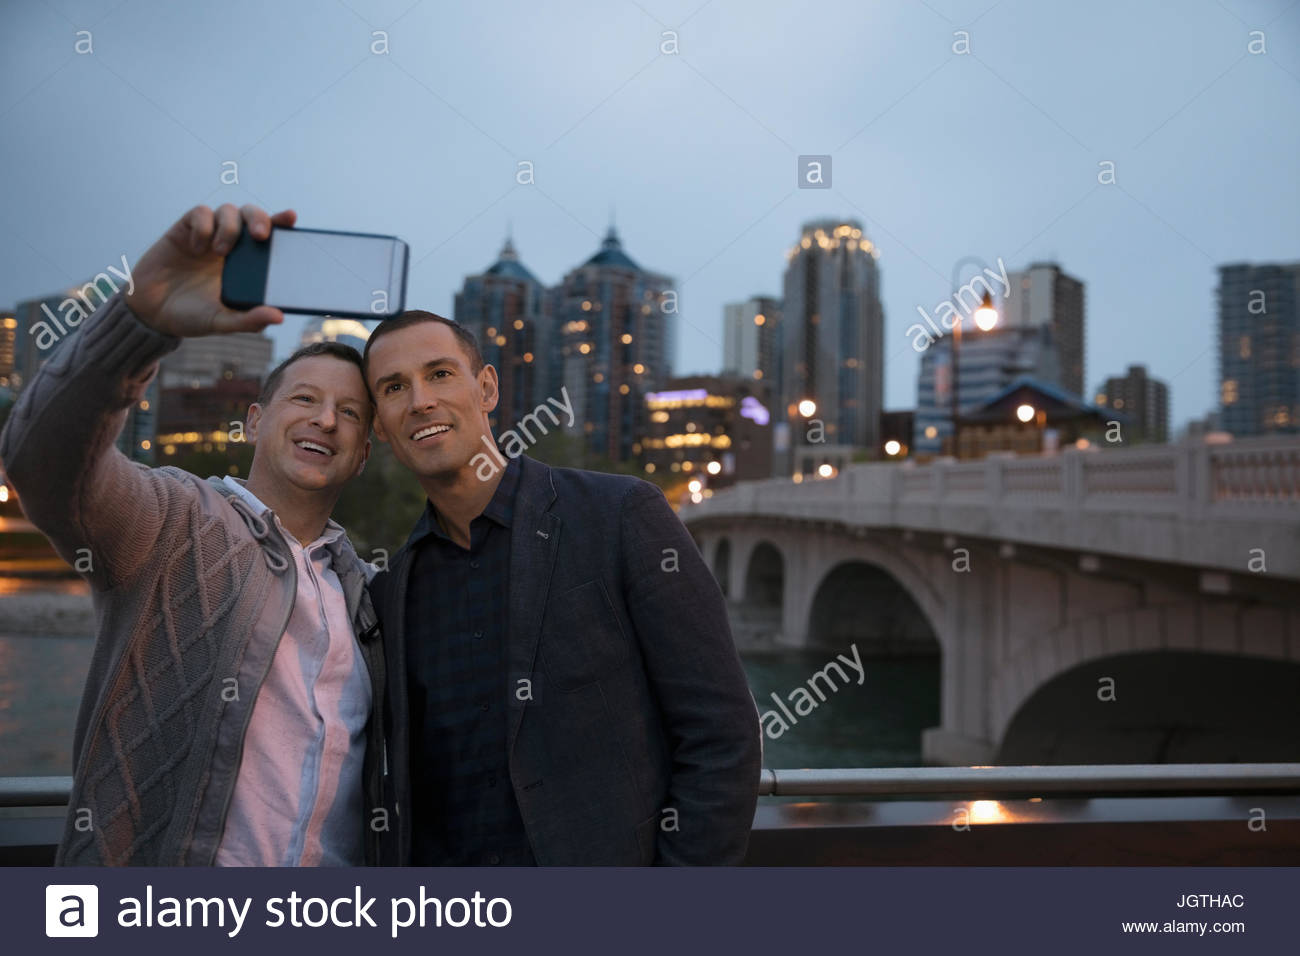 Male gay couple taking selfie with camera phone along urban waterfront at night - Stock Image